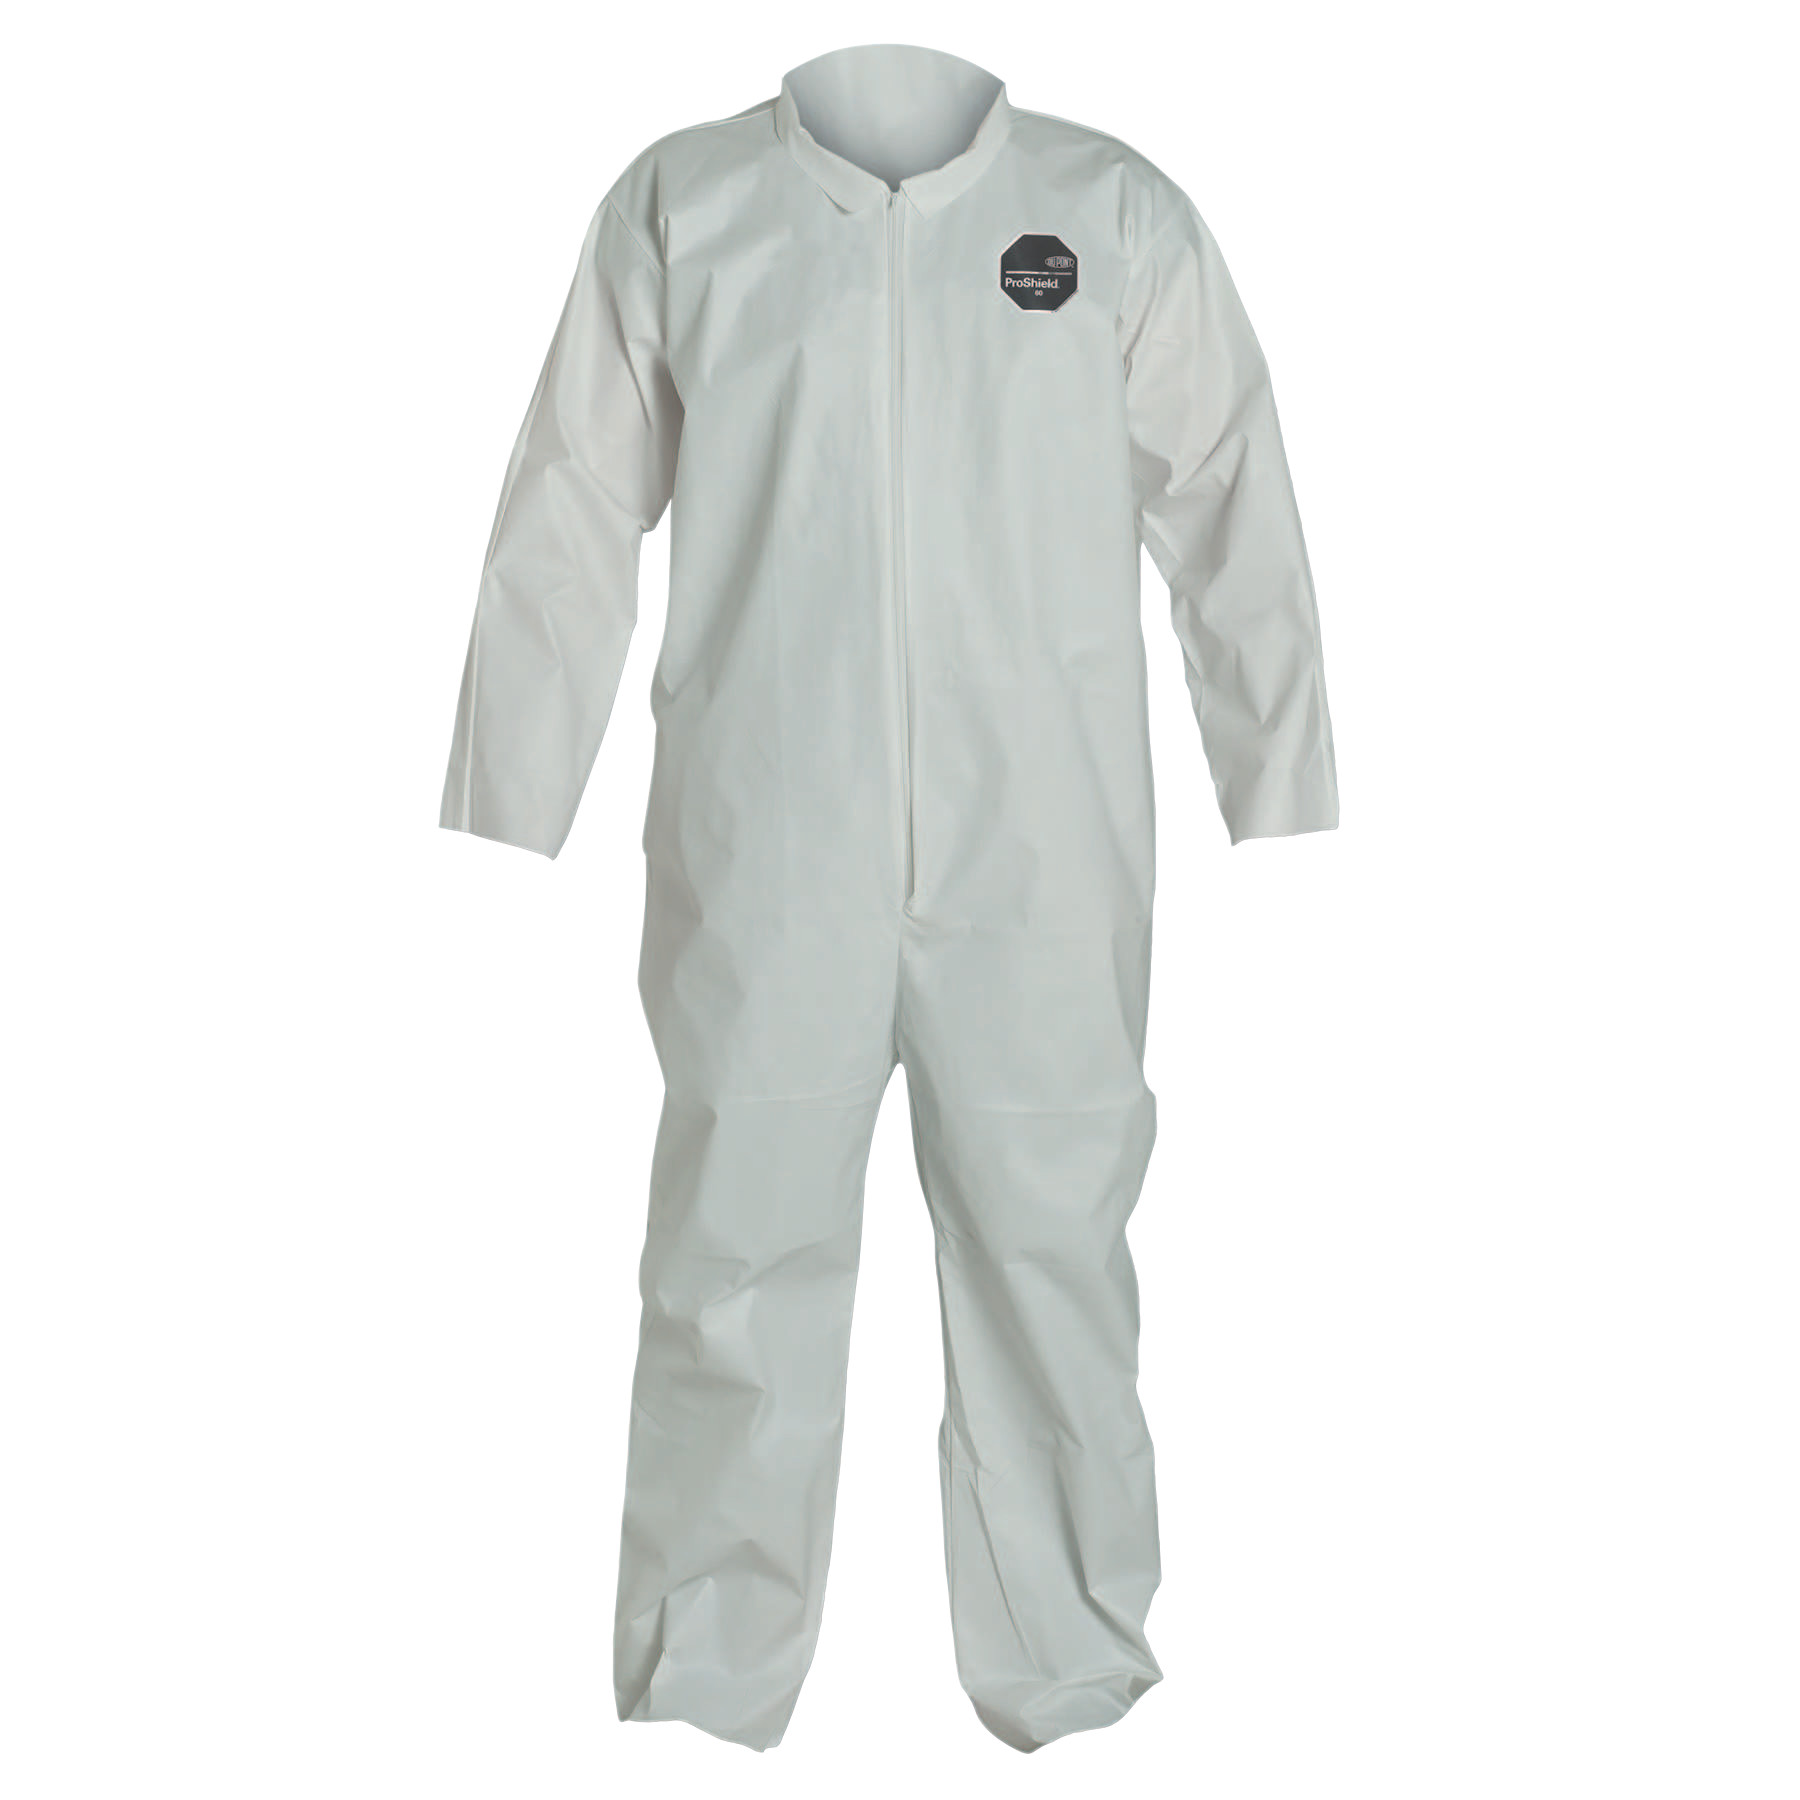 DuPont ProShield NexGen Coveralls, White, X-Large, With Collar by DuPont?